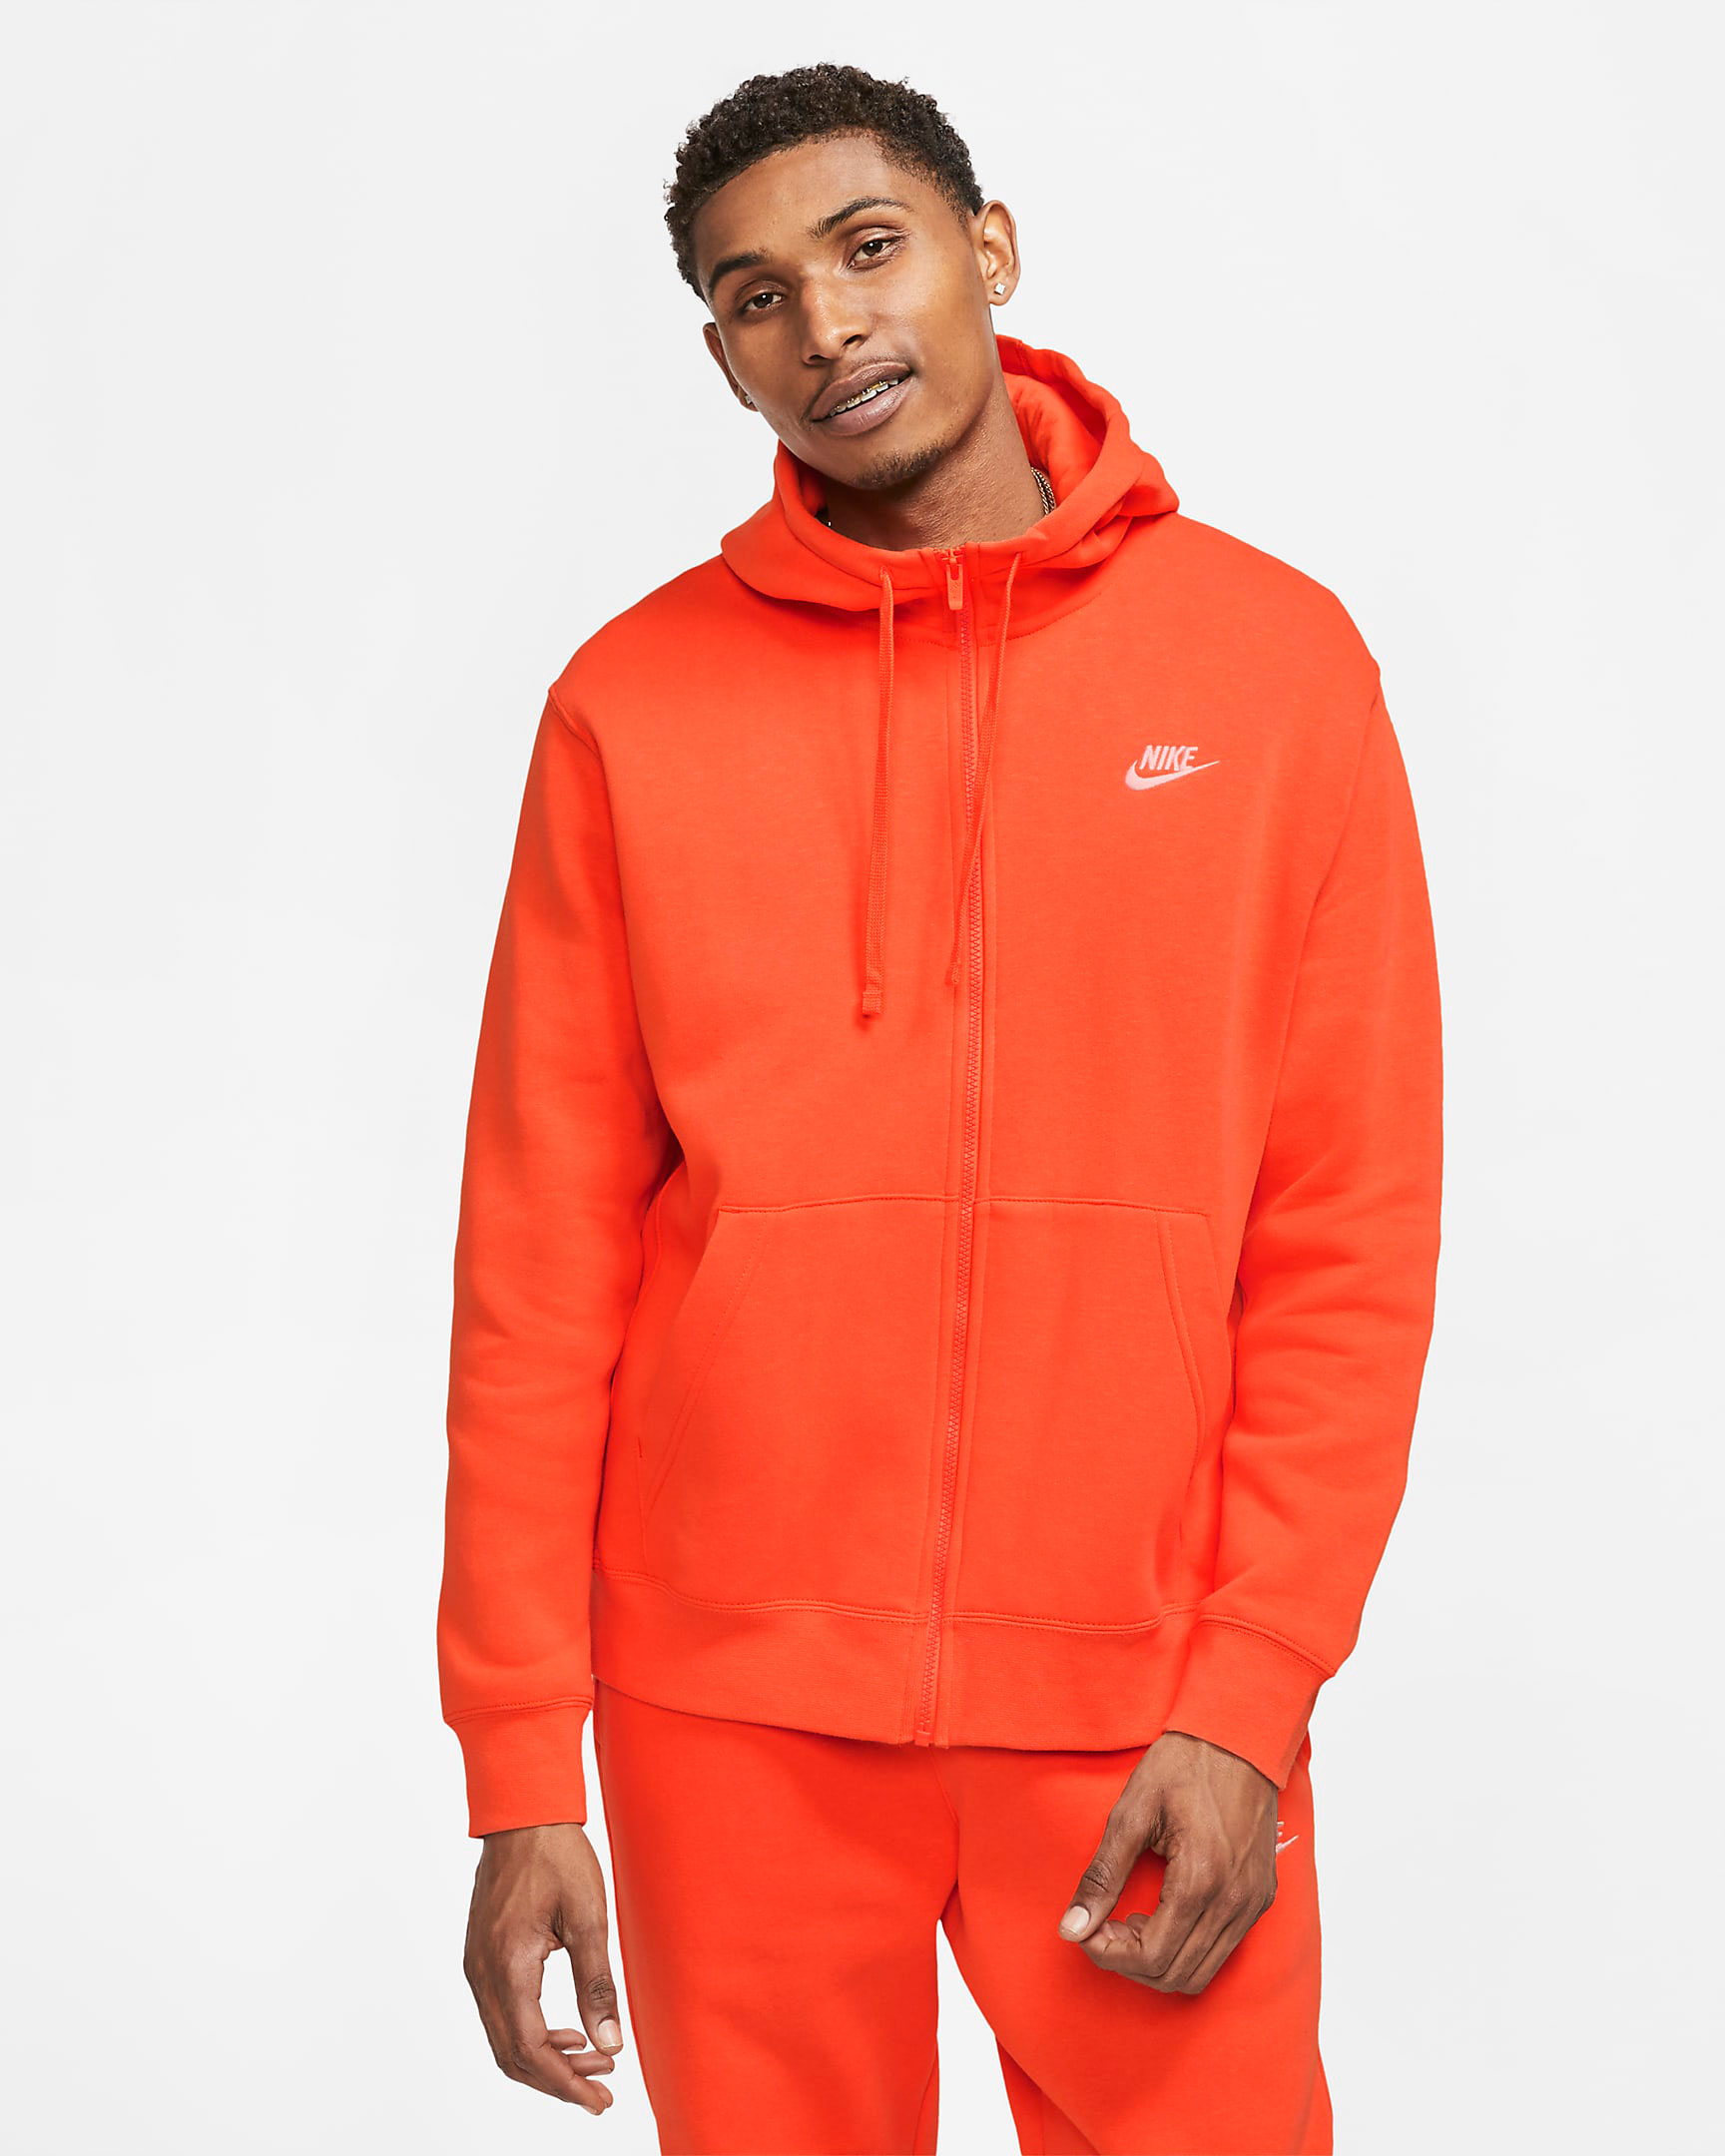 nike-sportswear-club-fleece-orange-full-zip-hoodie